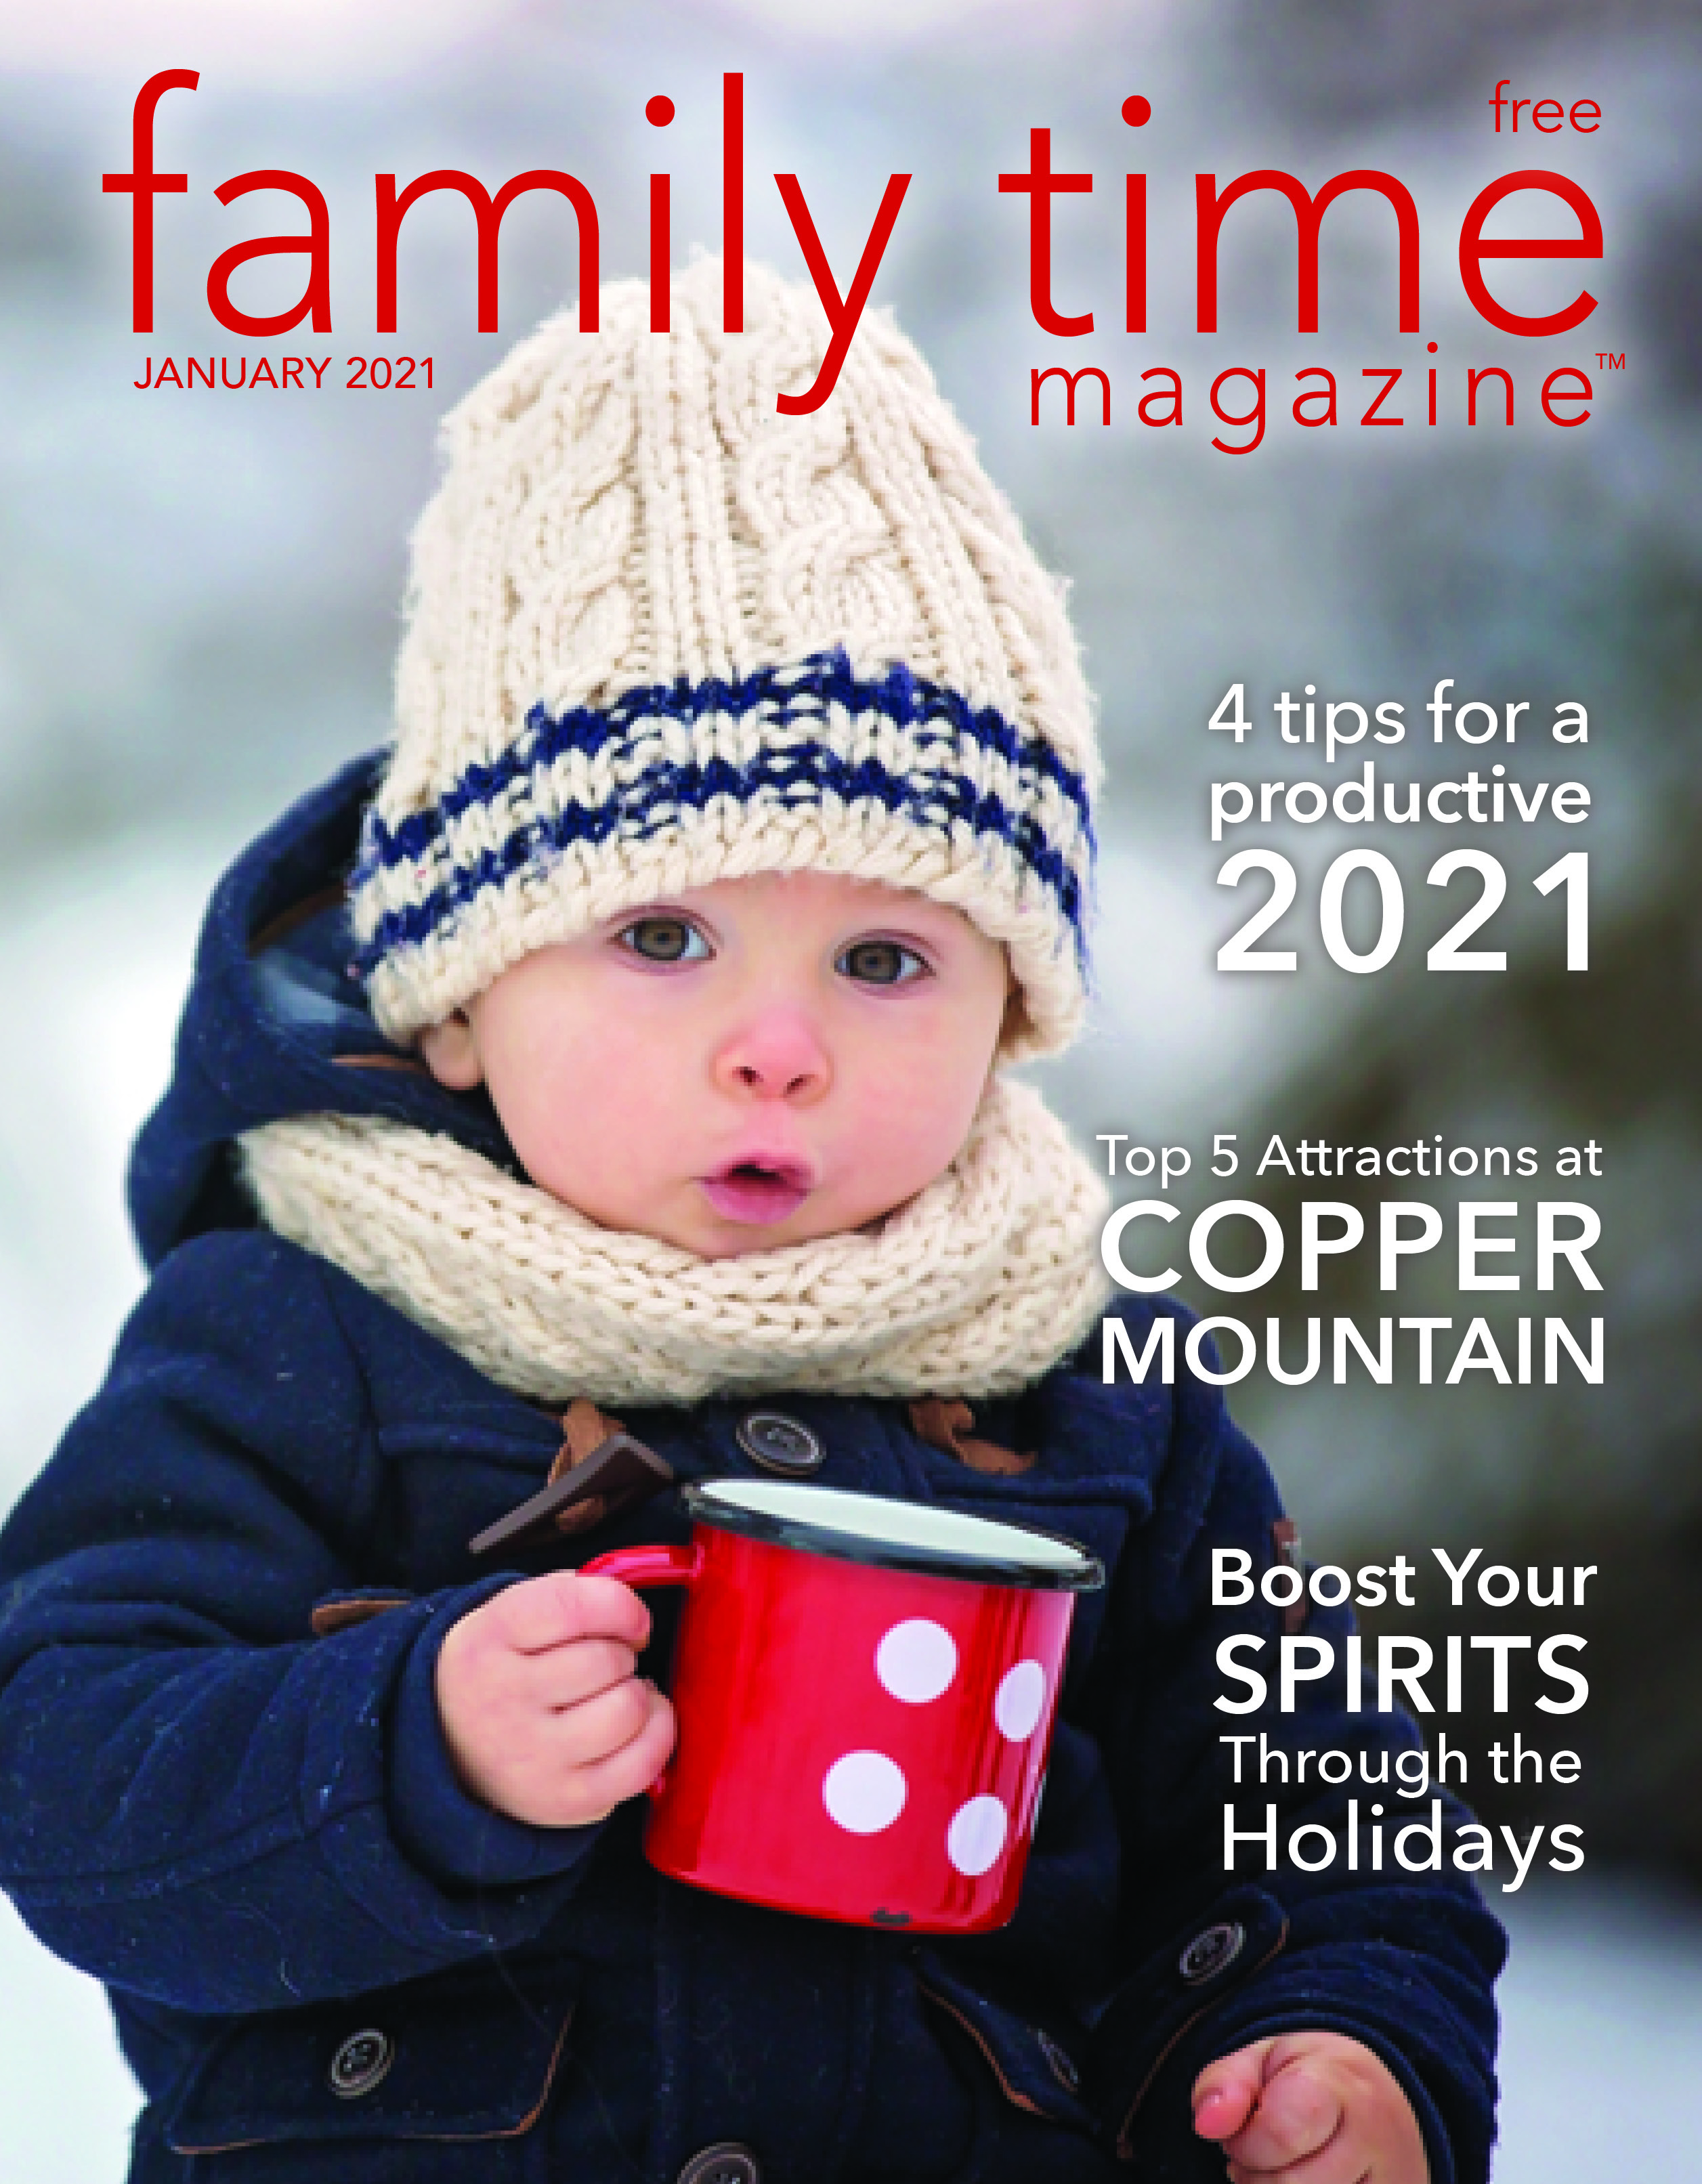 January 2021 issue